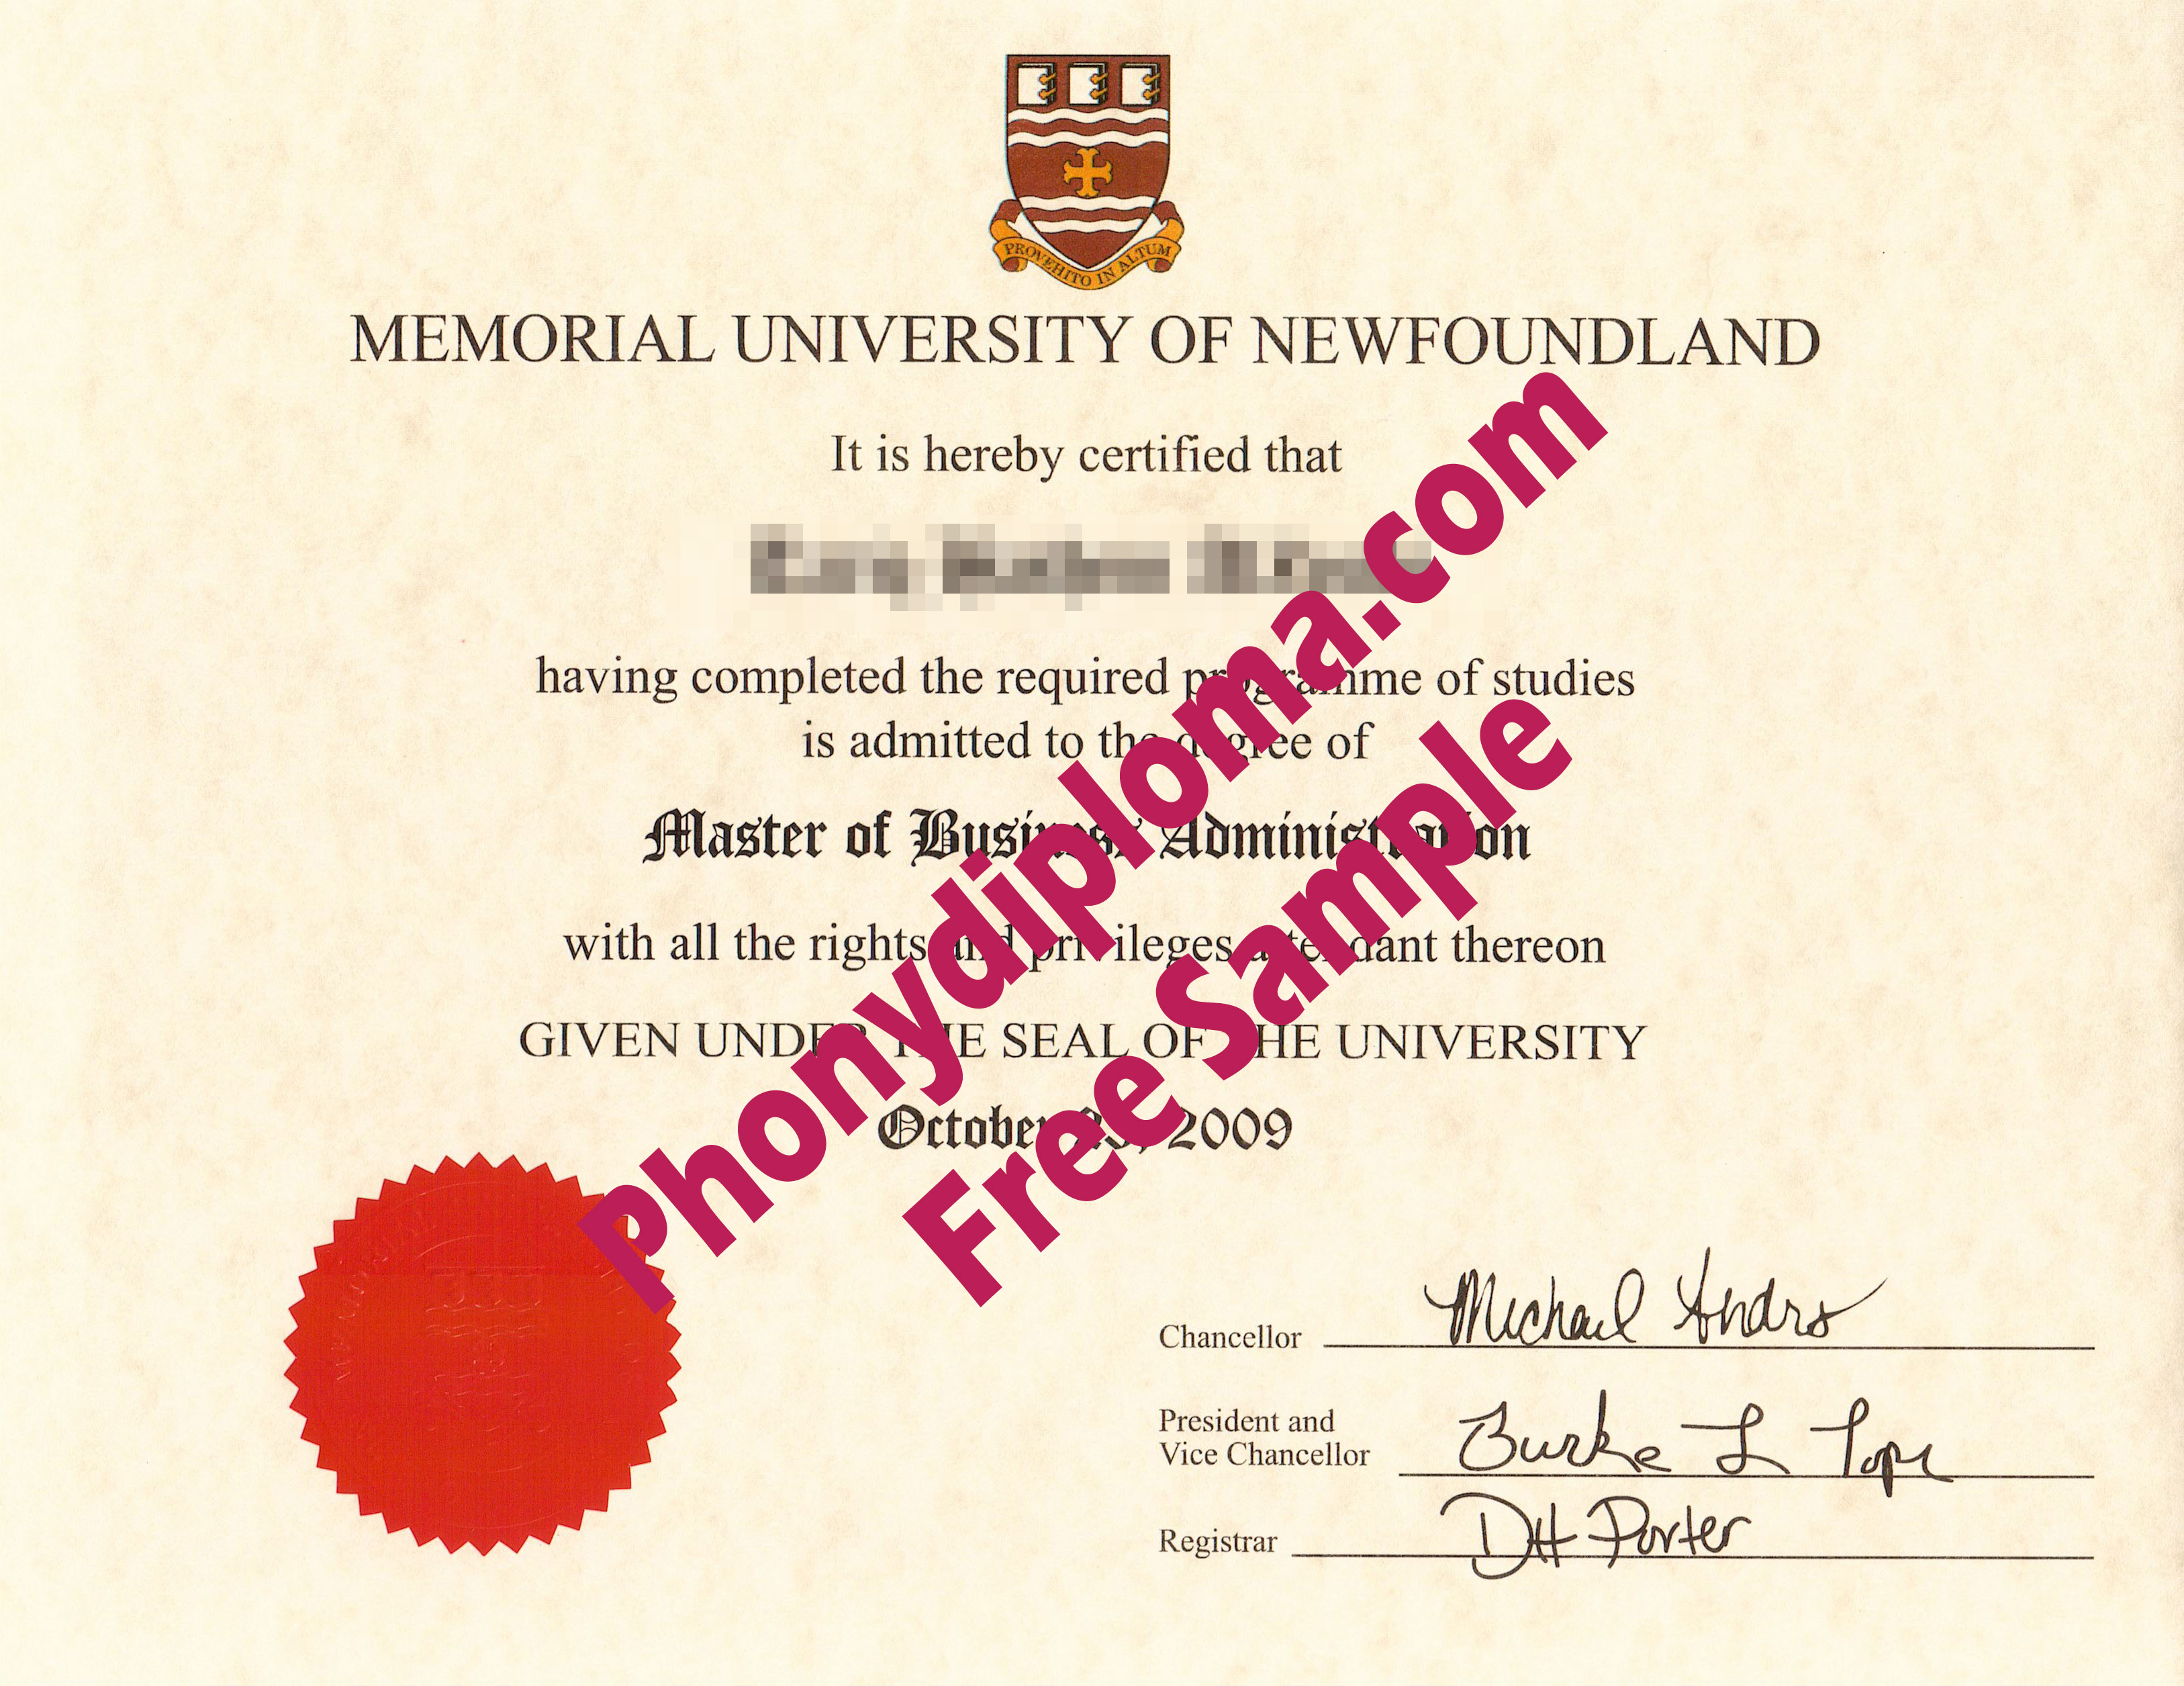 Memorial University Of Newfoundland Free Sample From Phonydiploma